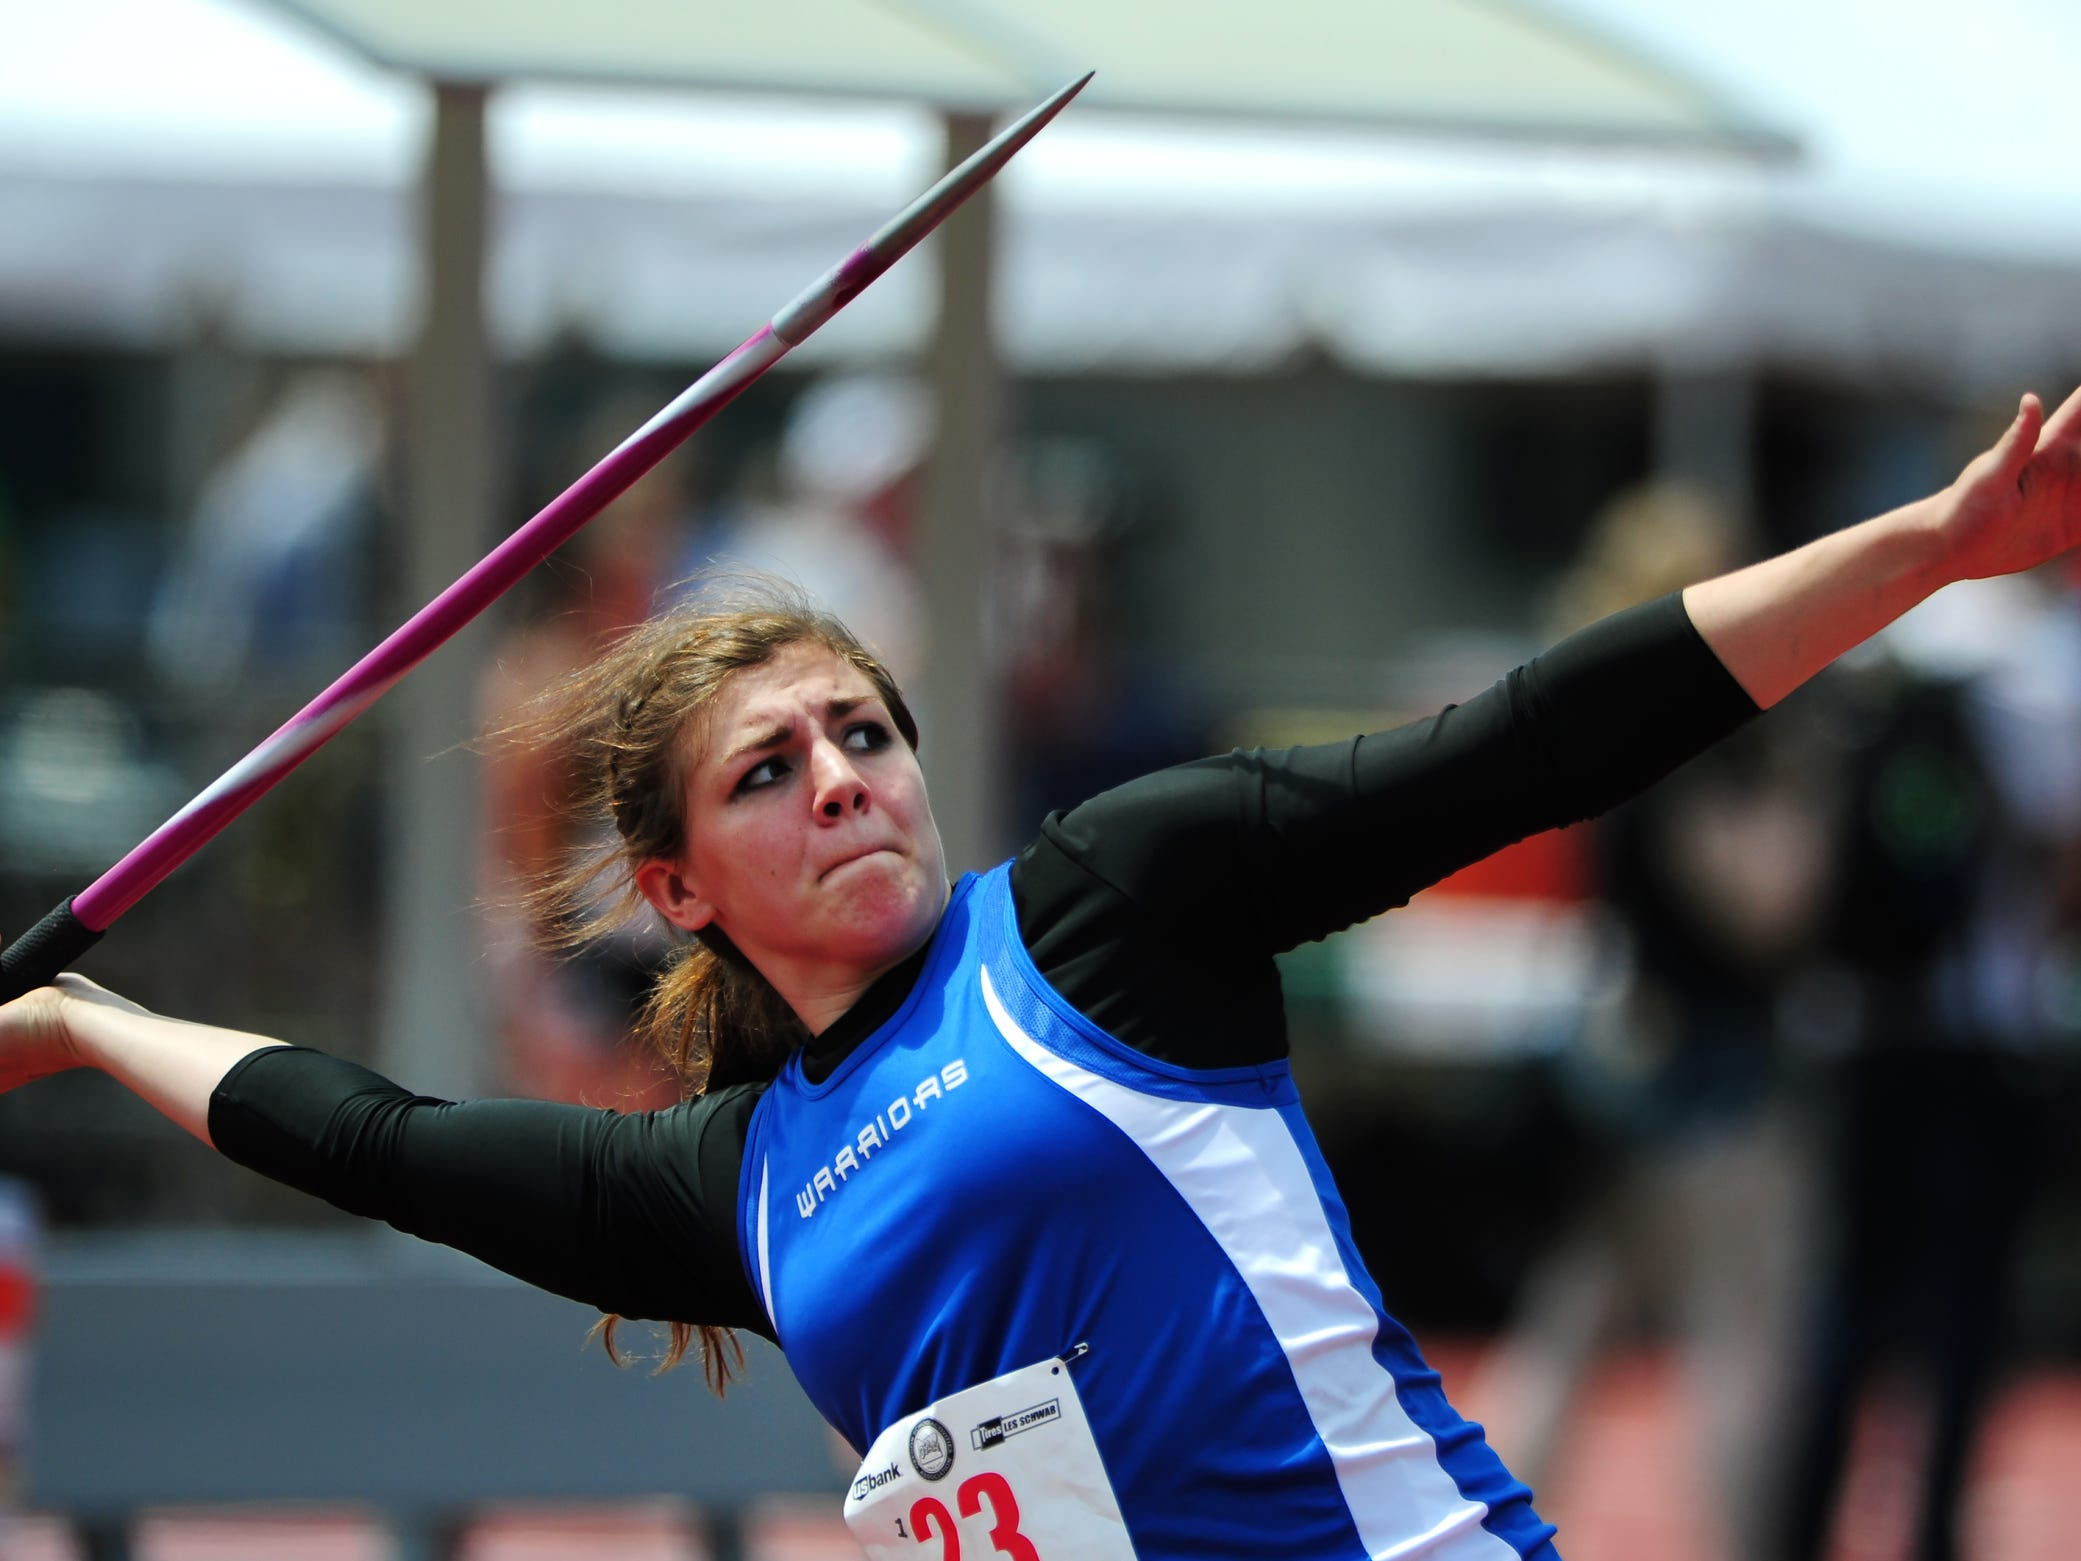 Amity javelin thrower Lindsay McShane competes during the OSAA Class 3A Track & Field Championships inside Hayward Field at the University of Oregon, on Thursday, May 21, 2015, in Eugene.